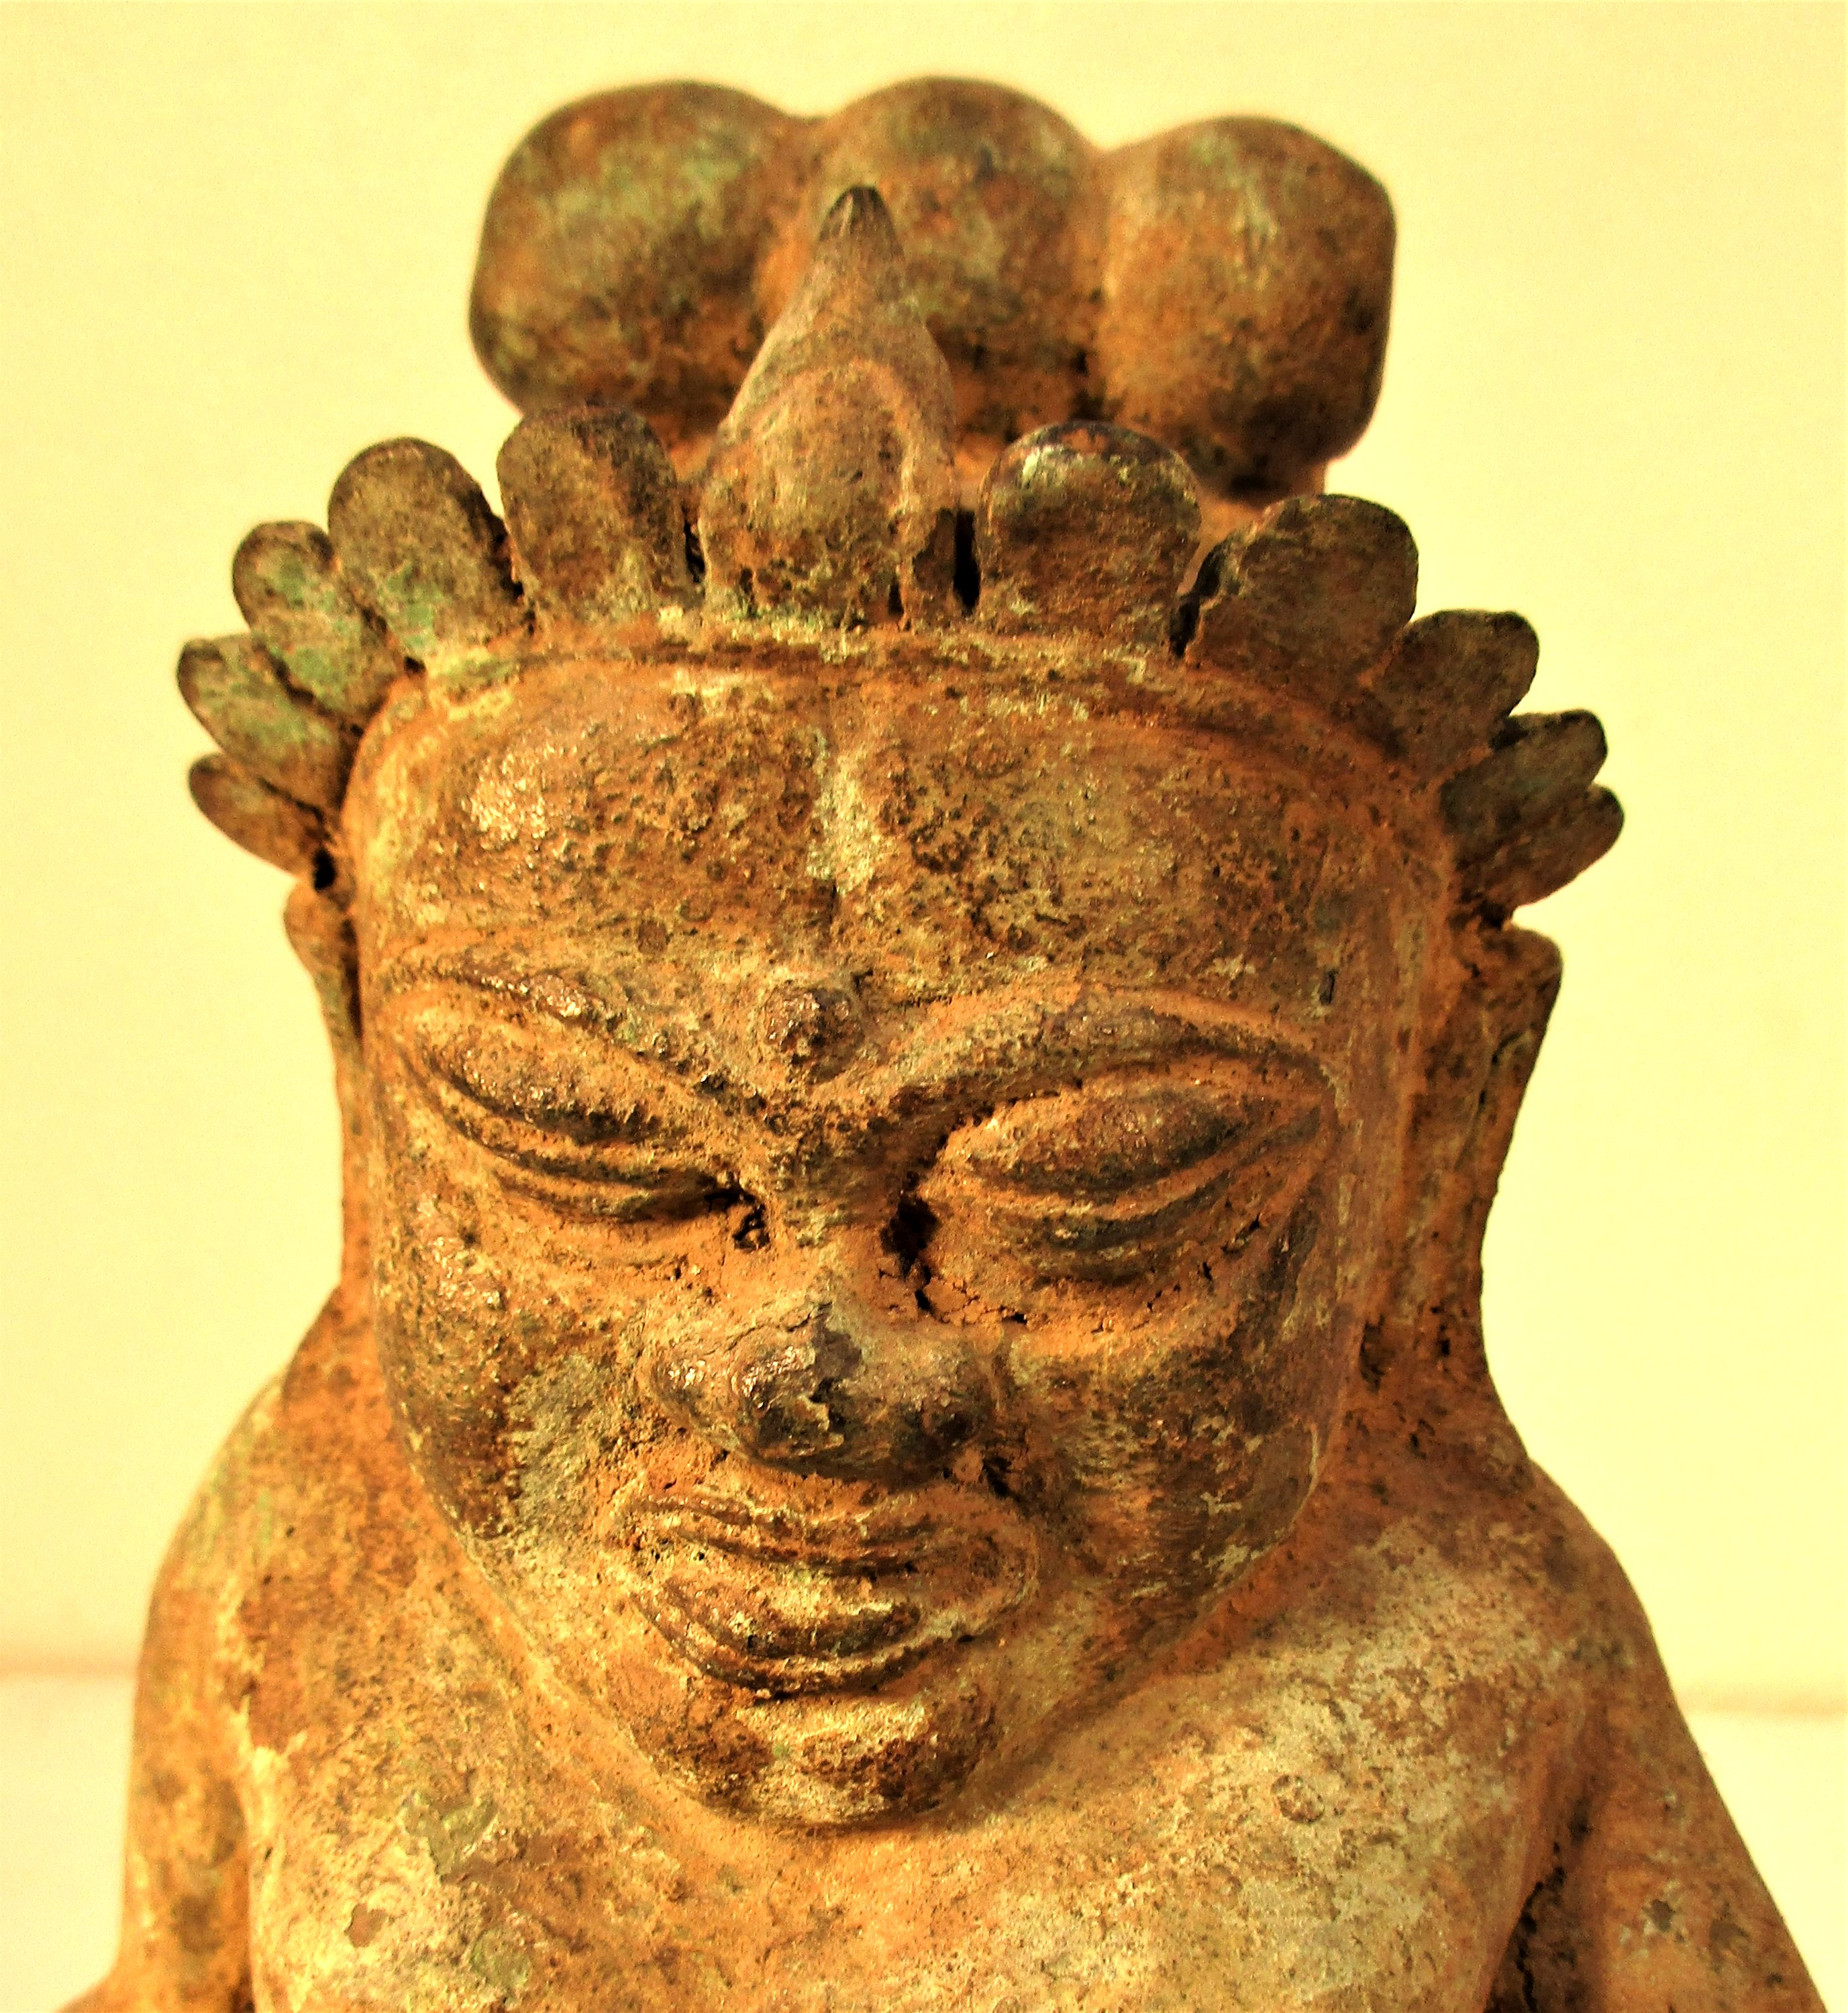 Bronze Chinese Buddha, cast in Bali. Buddha is holding a torje and a horn. 25 x 15cm. Early 21st c. - Image 4 of 4